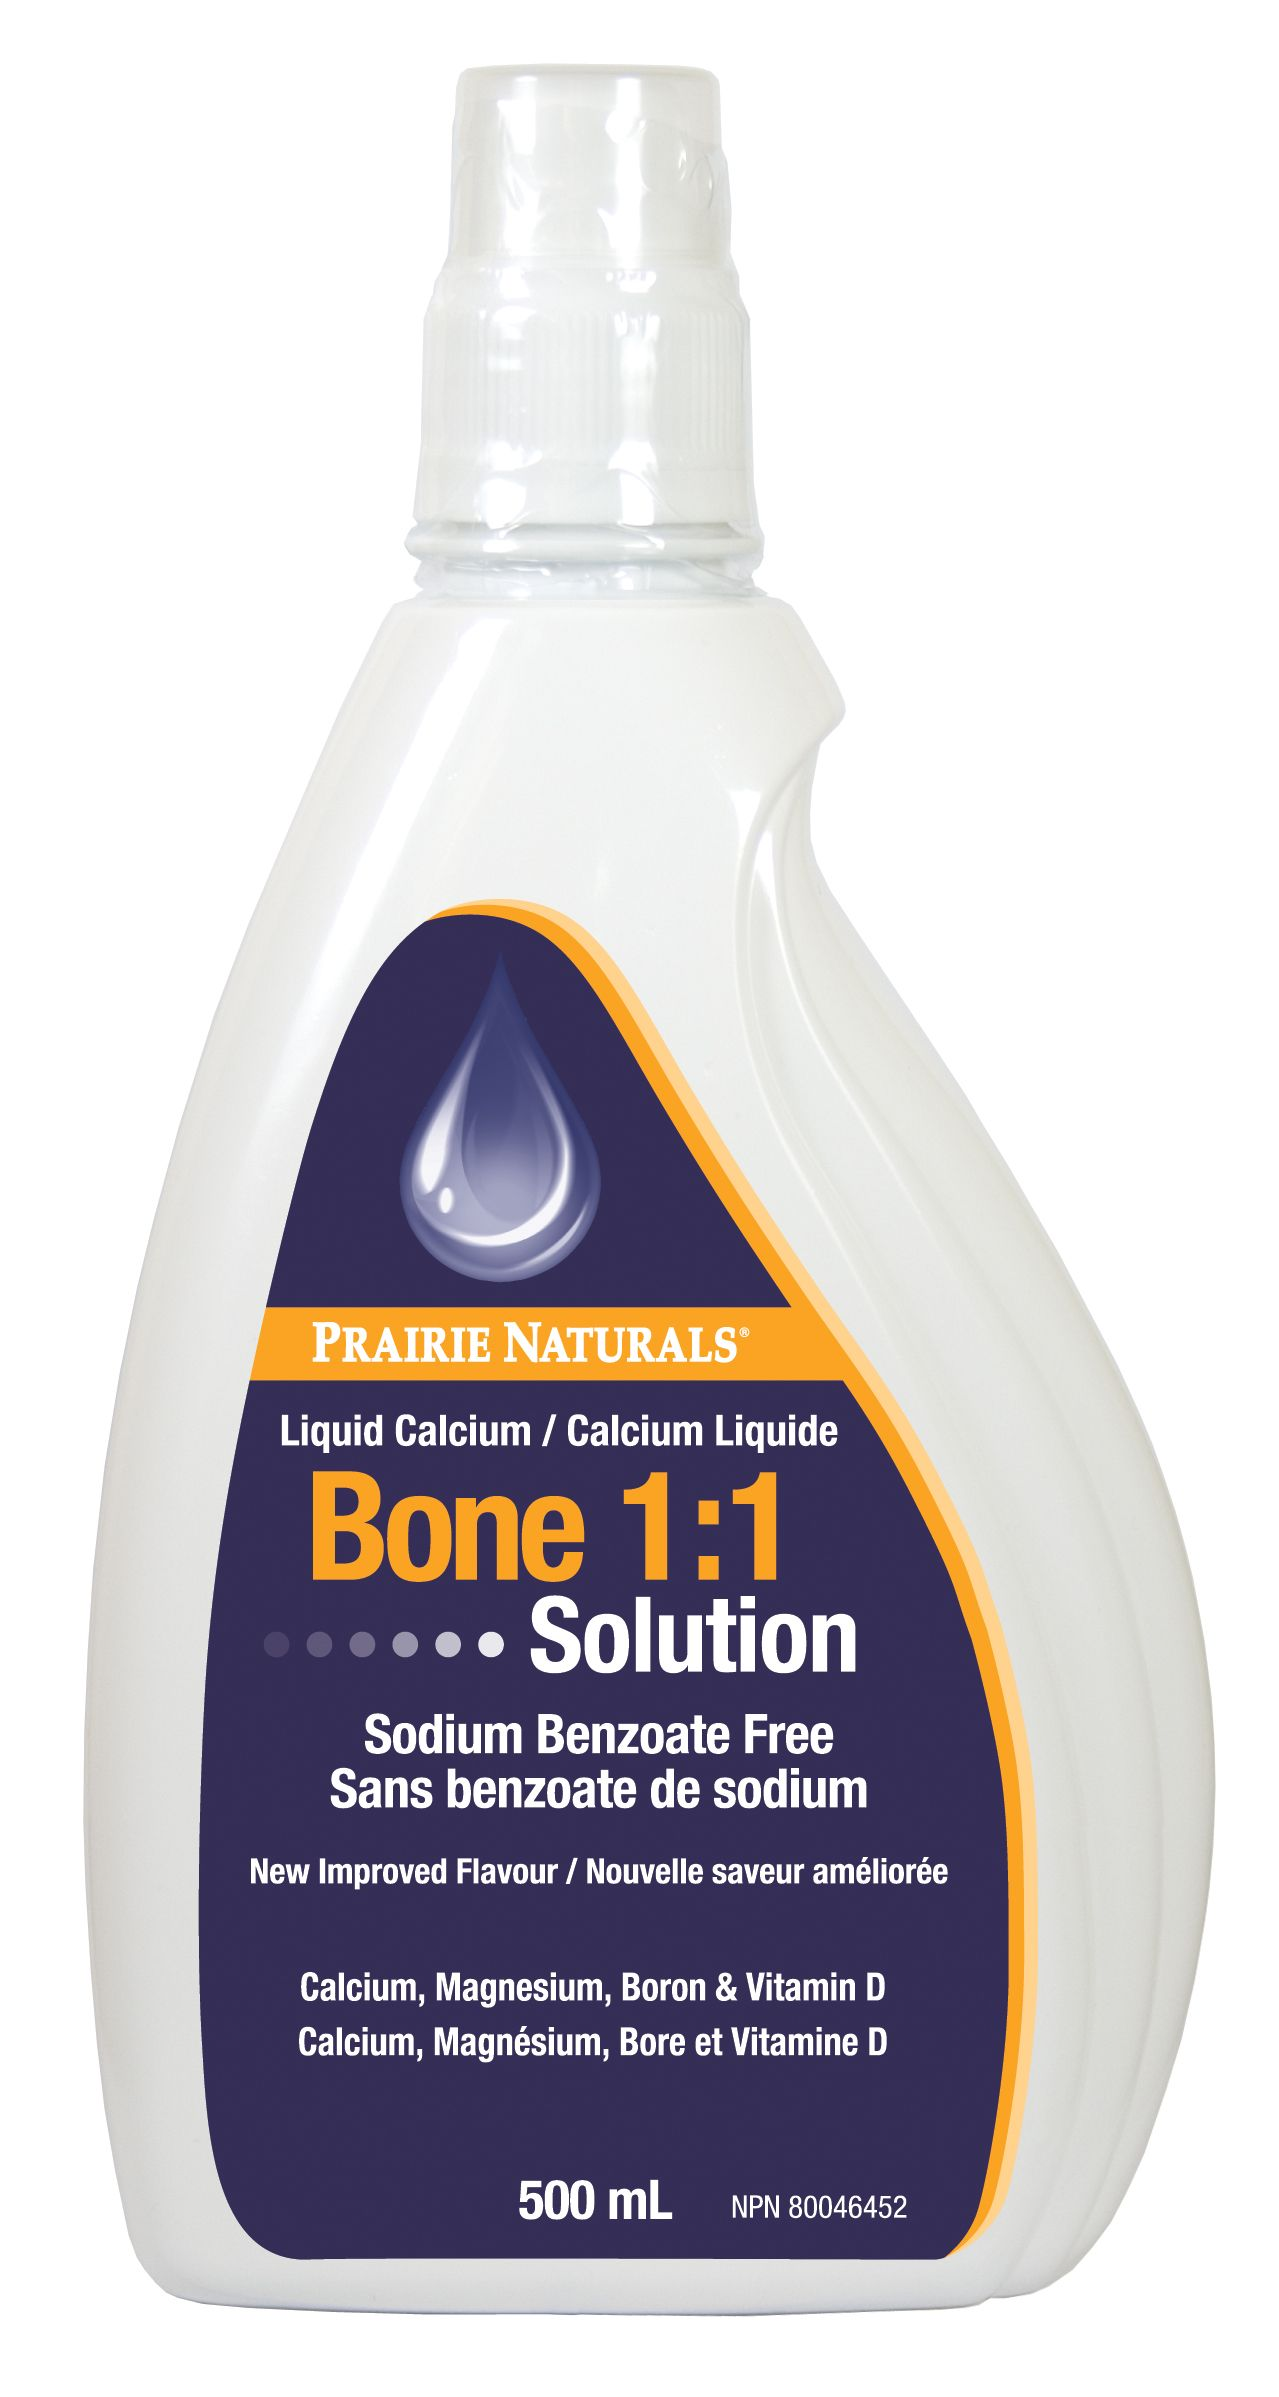 Bone Solution Read more at www.prairienaturals.ca